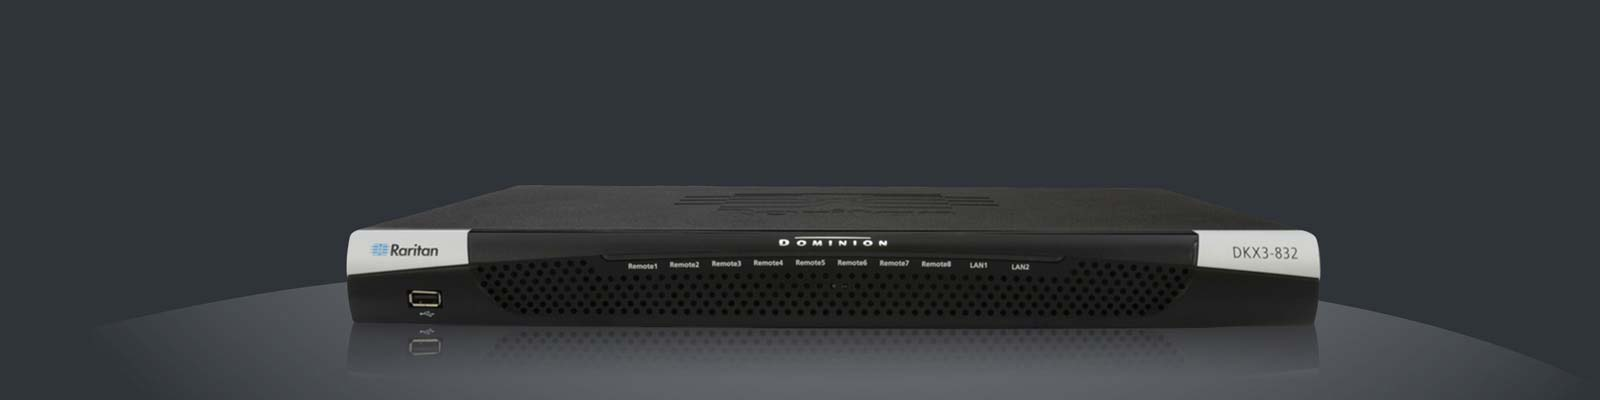 Raritan Dominion DKX3 Enterprise KVM Over IP Switch